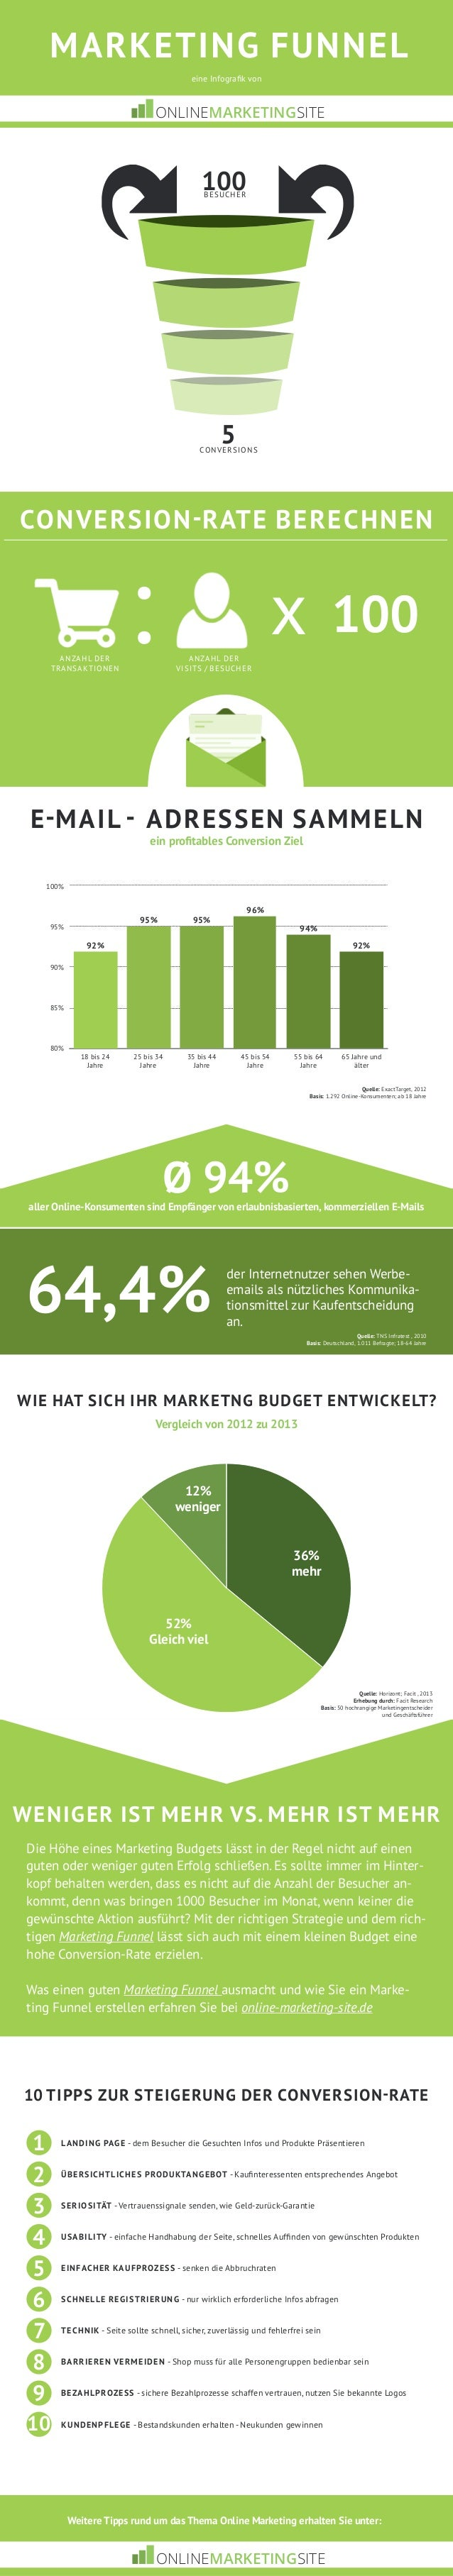 Marketing Funnel  eine Infografik von  ONLINEMARKETINGSITE  100  Besucher  5  Conversions  Conversion-Rate berechnen  Anza...